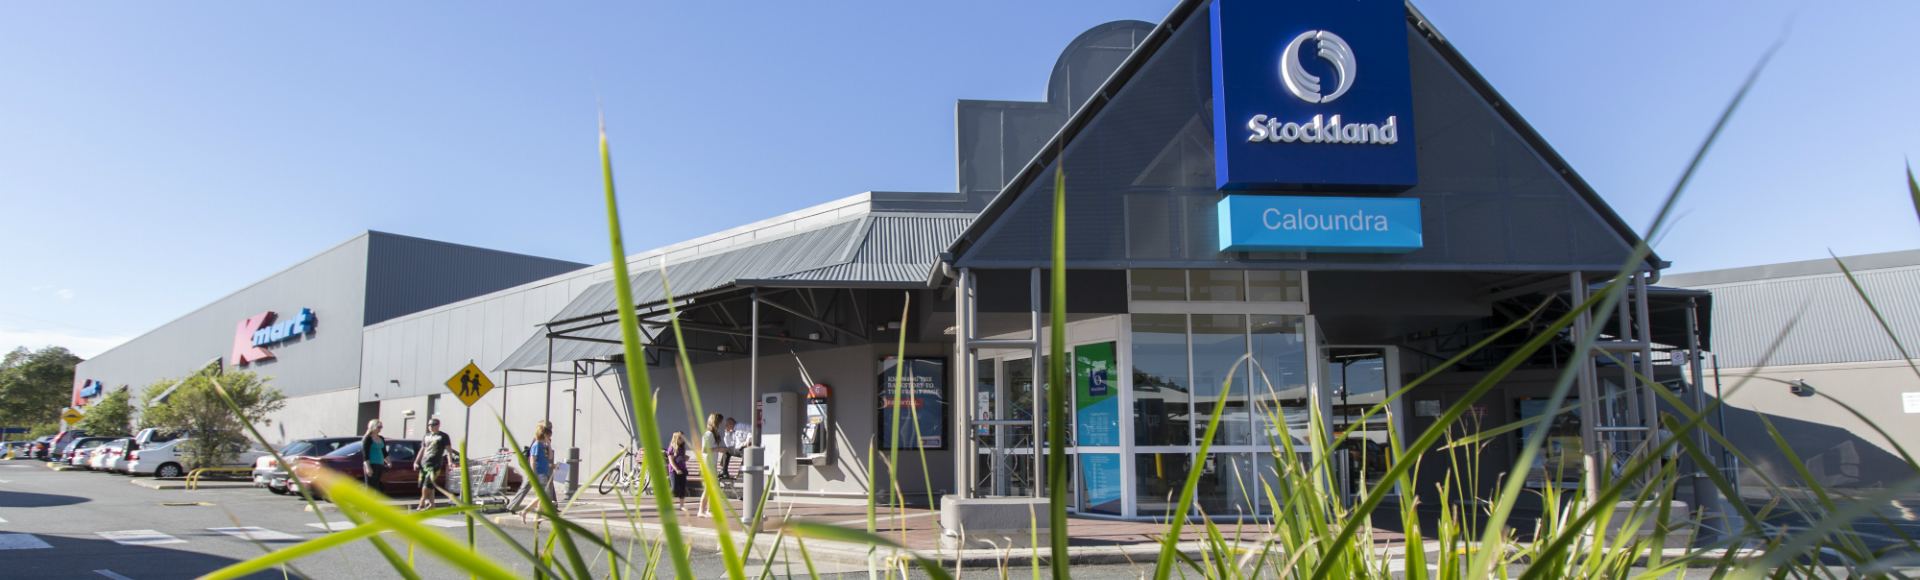 Caloundra Shopping Centre Main Entrance 1920x580px